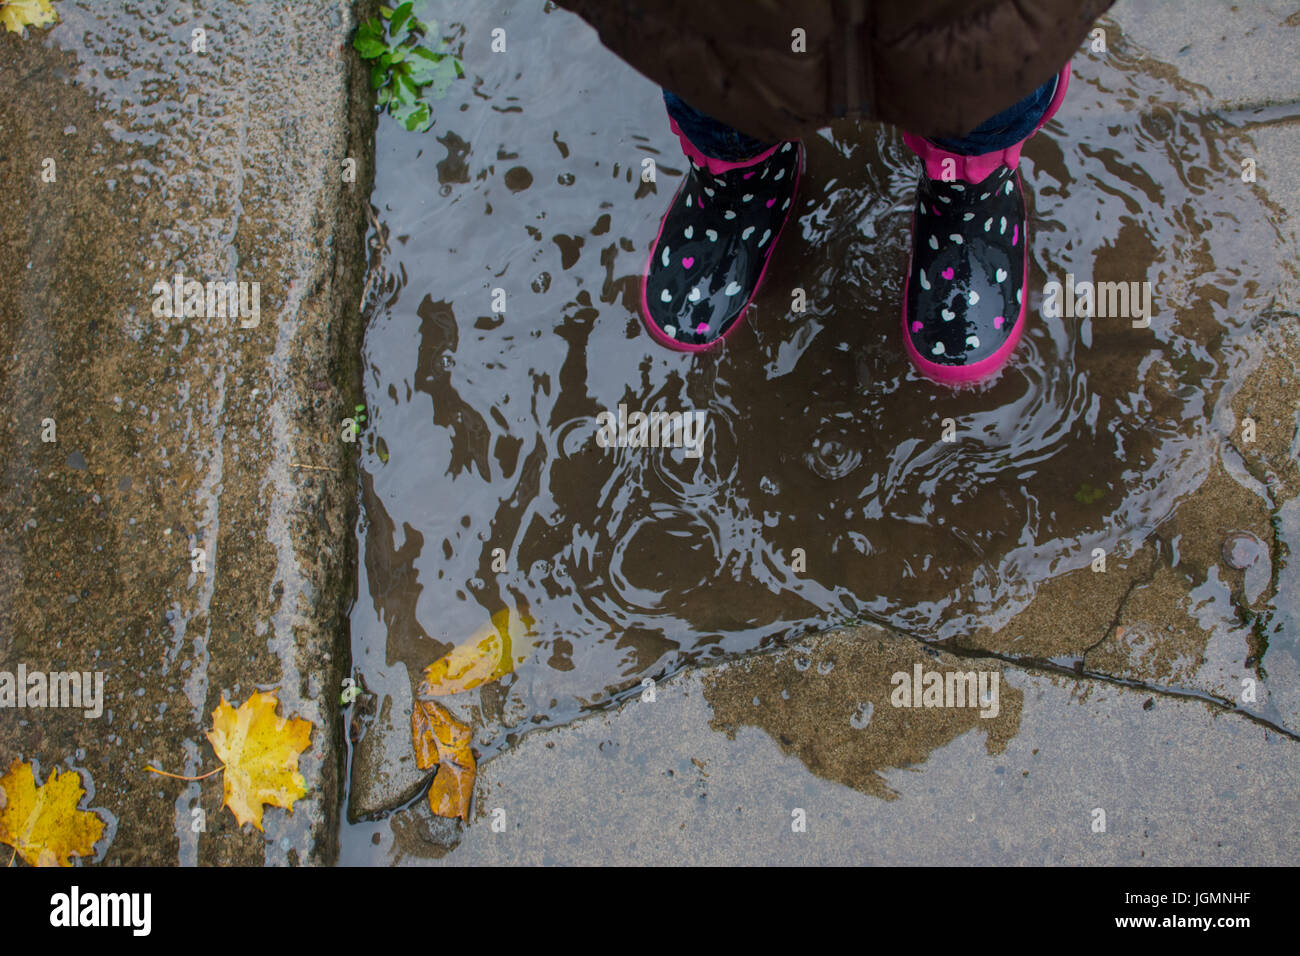 A small child stands in rain boots in a puddle in autumn. - Stock Image